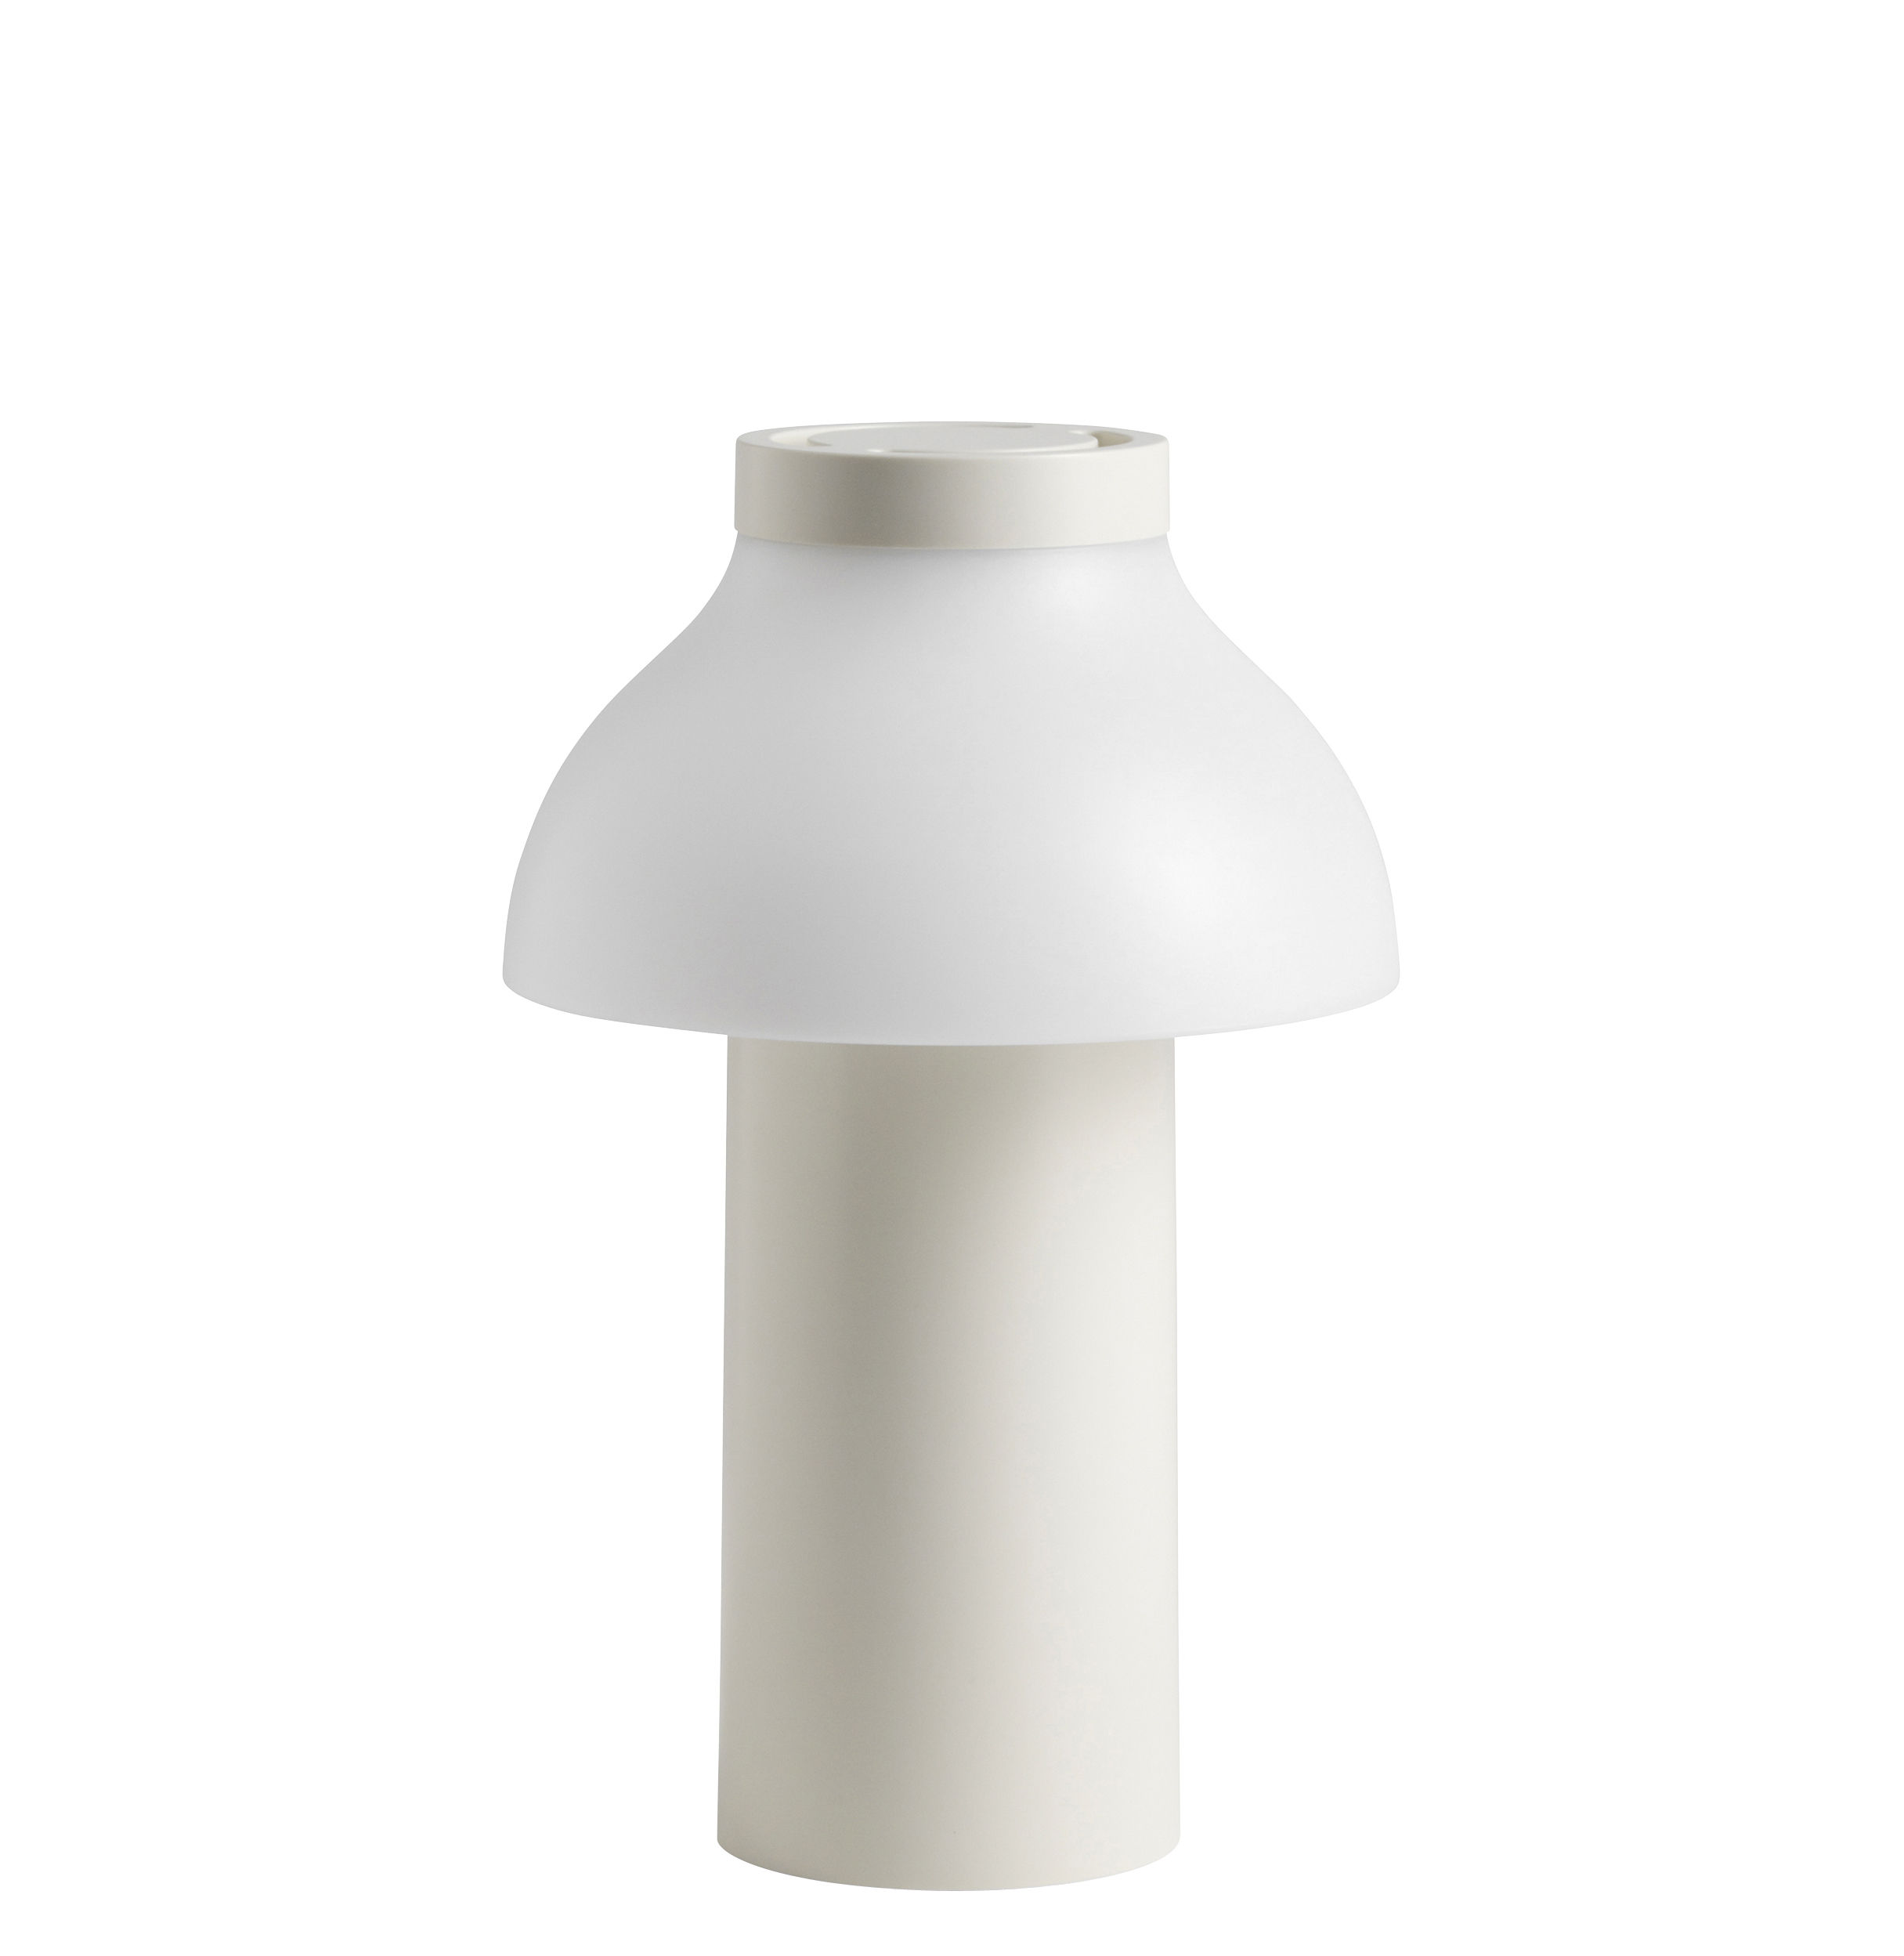 Lighting - Table Lamps - PC Portable LED Wireless lamp - / For outdoor use - USB charging by Hay - Cream - Polythene